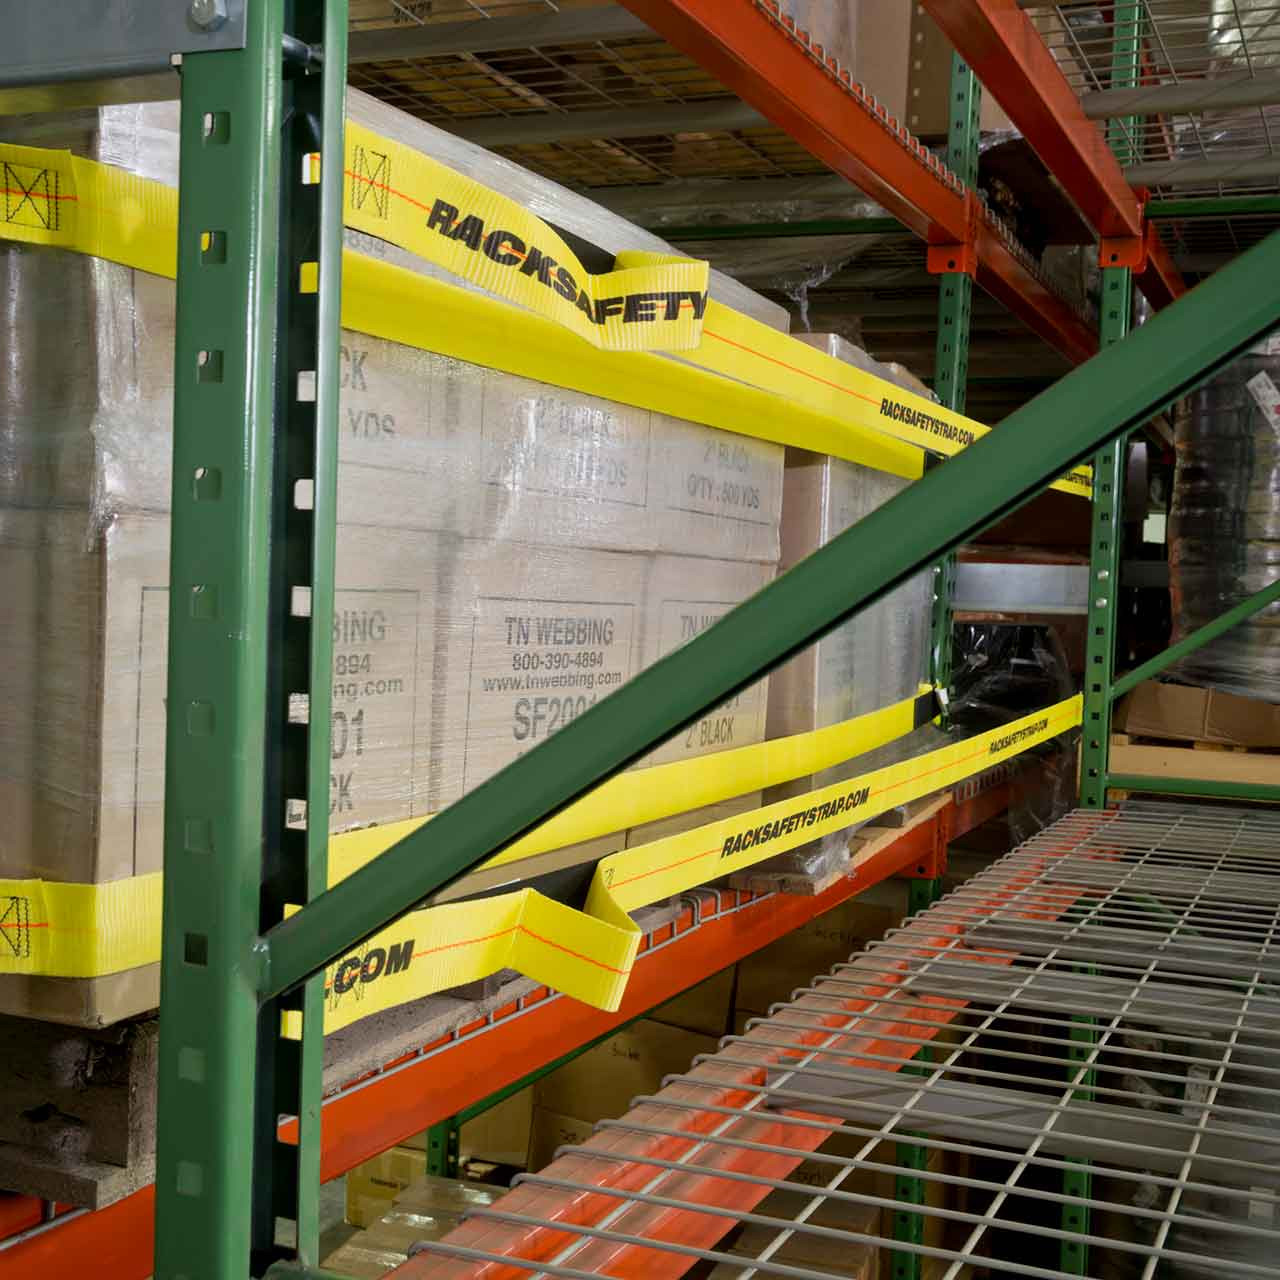 Pallet racking safety straps protect from accidental push-throughs or falls